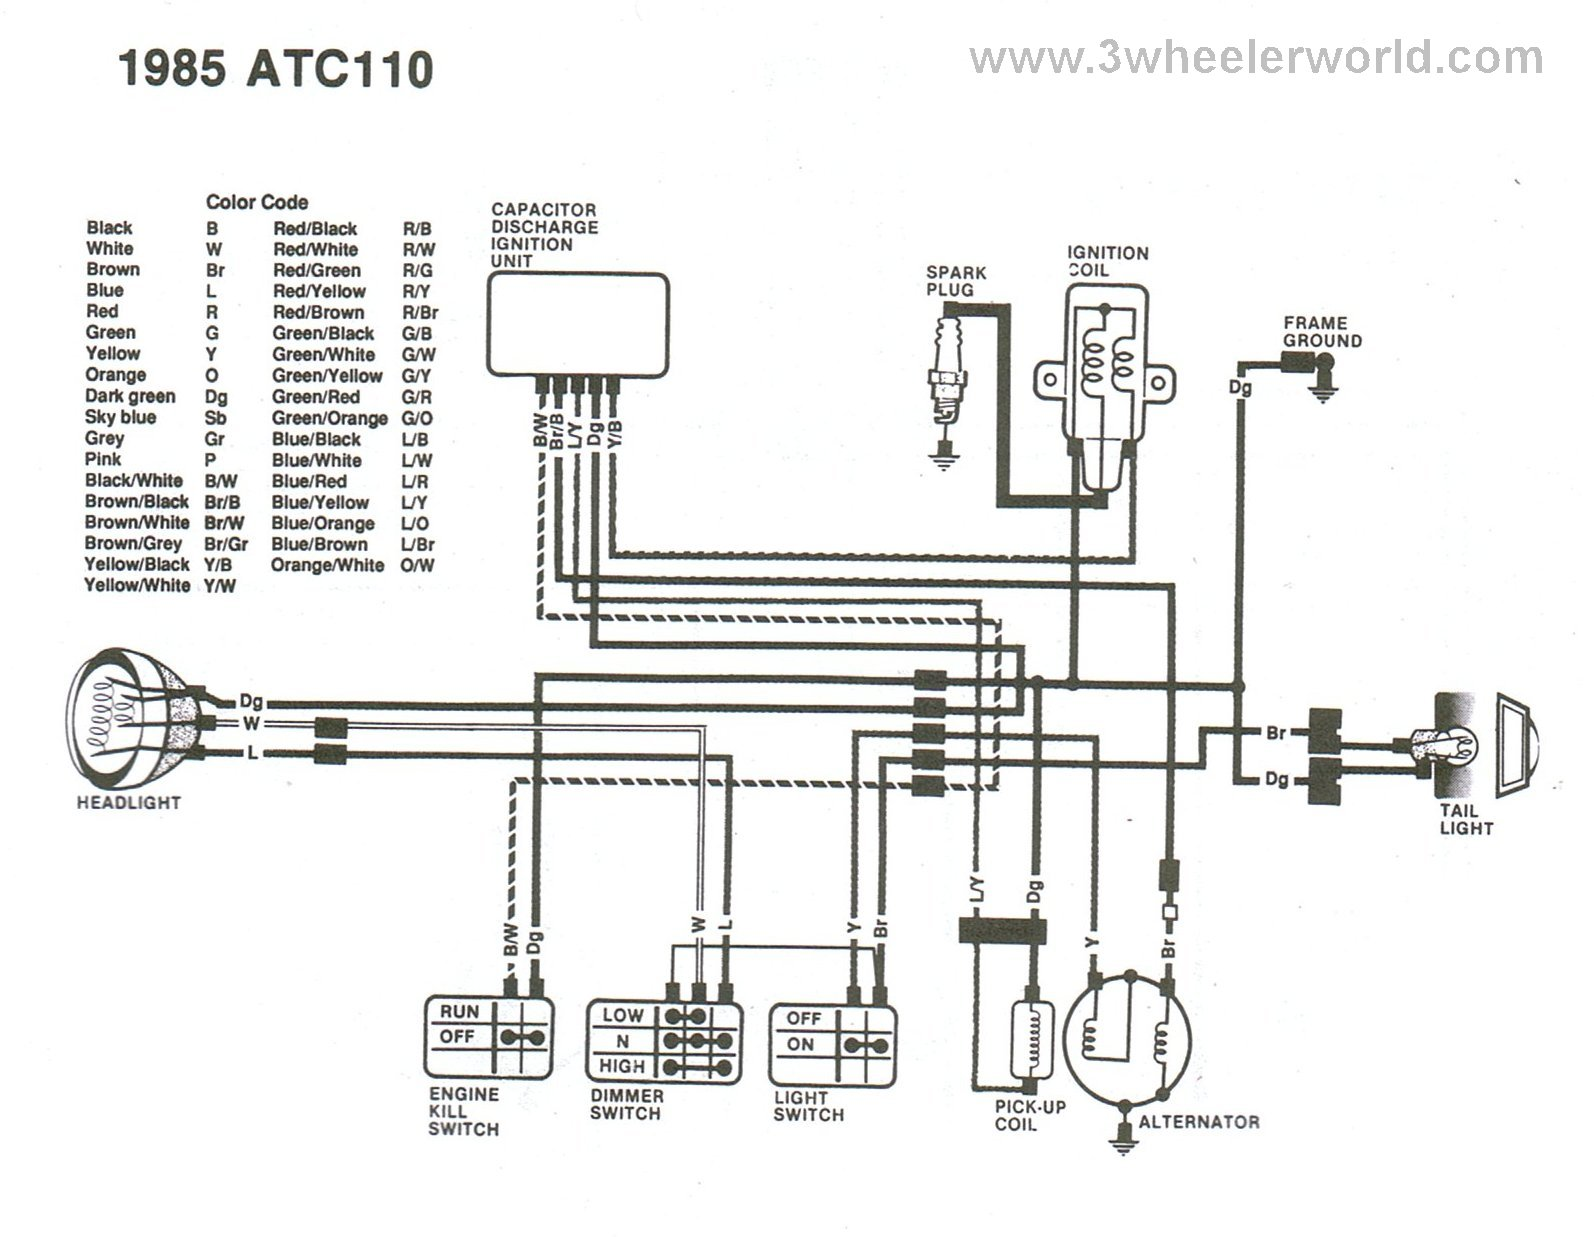 ATC110x85 3 wheeler world tech help honda wiring diagrams 1980 honda atc 110 wiring diagram at creativeand.co